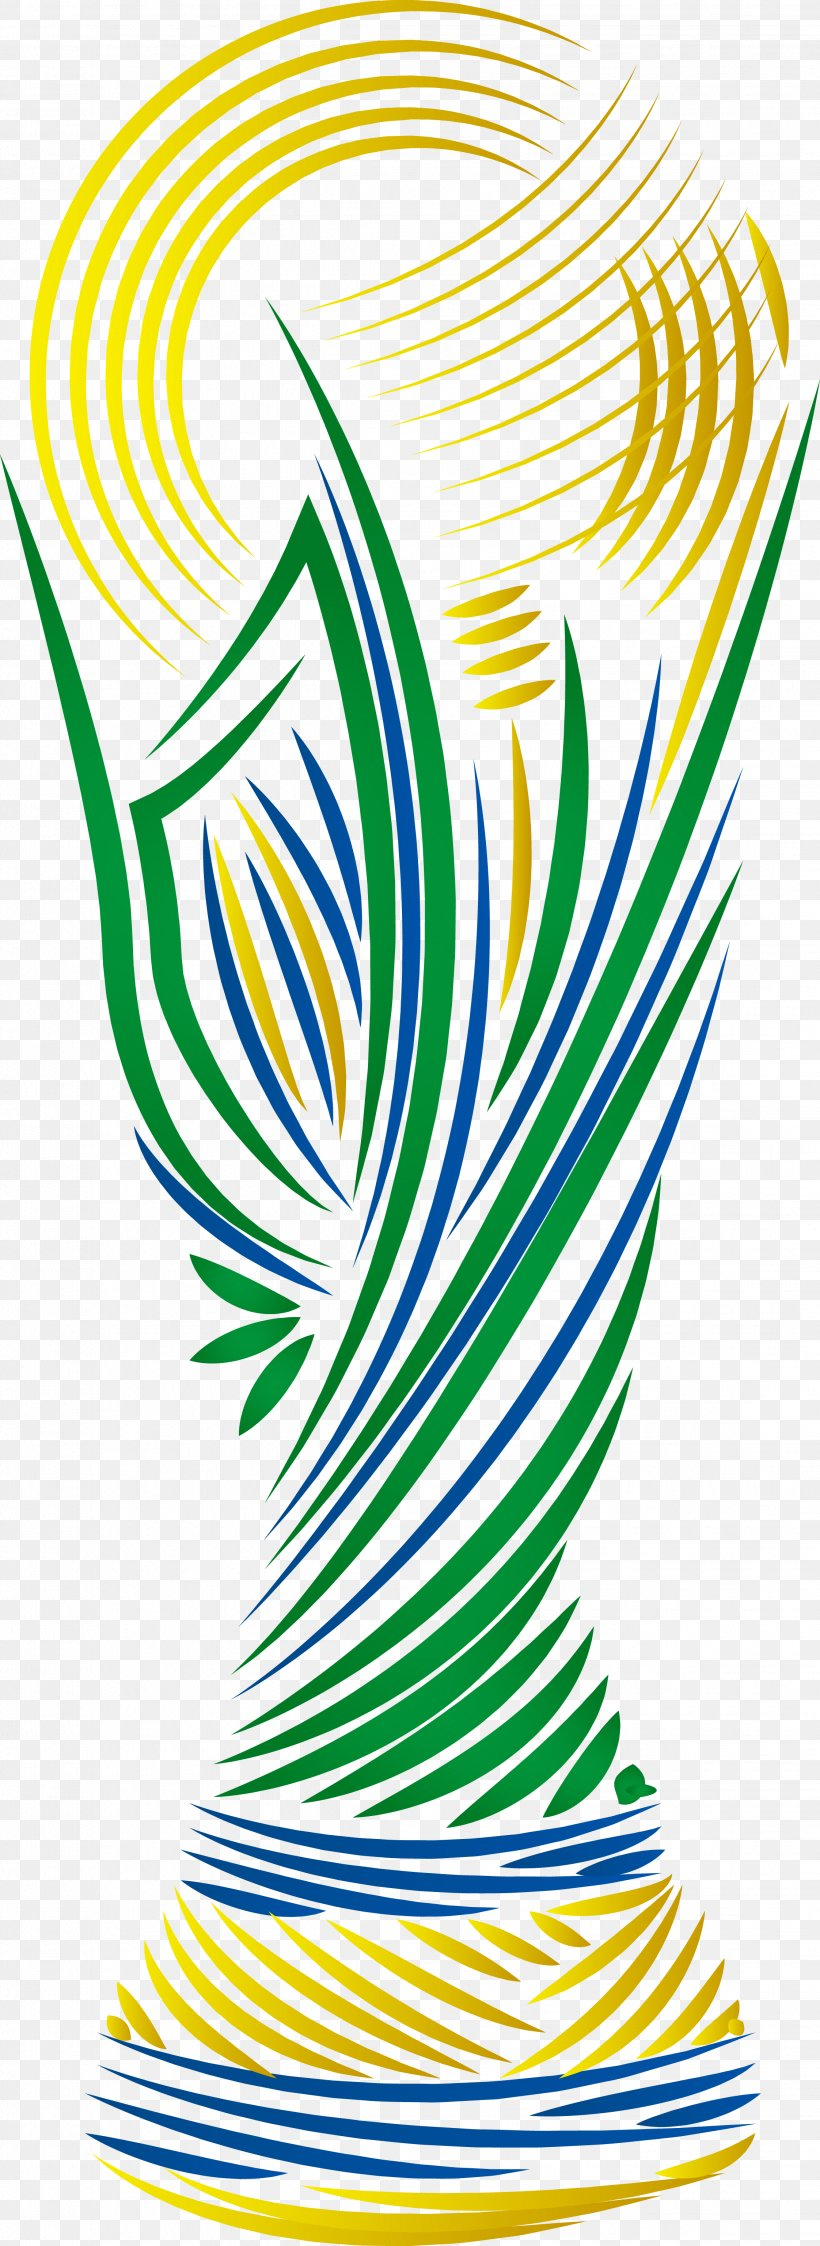 2014 FIFA World Cup Brazil National Football Team Euclidean Vector, PNG, 2244x6148px, 2014 Fifa World Cup, Area, Brazil, Brazil National Football Team, Cup Download Free